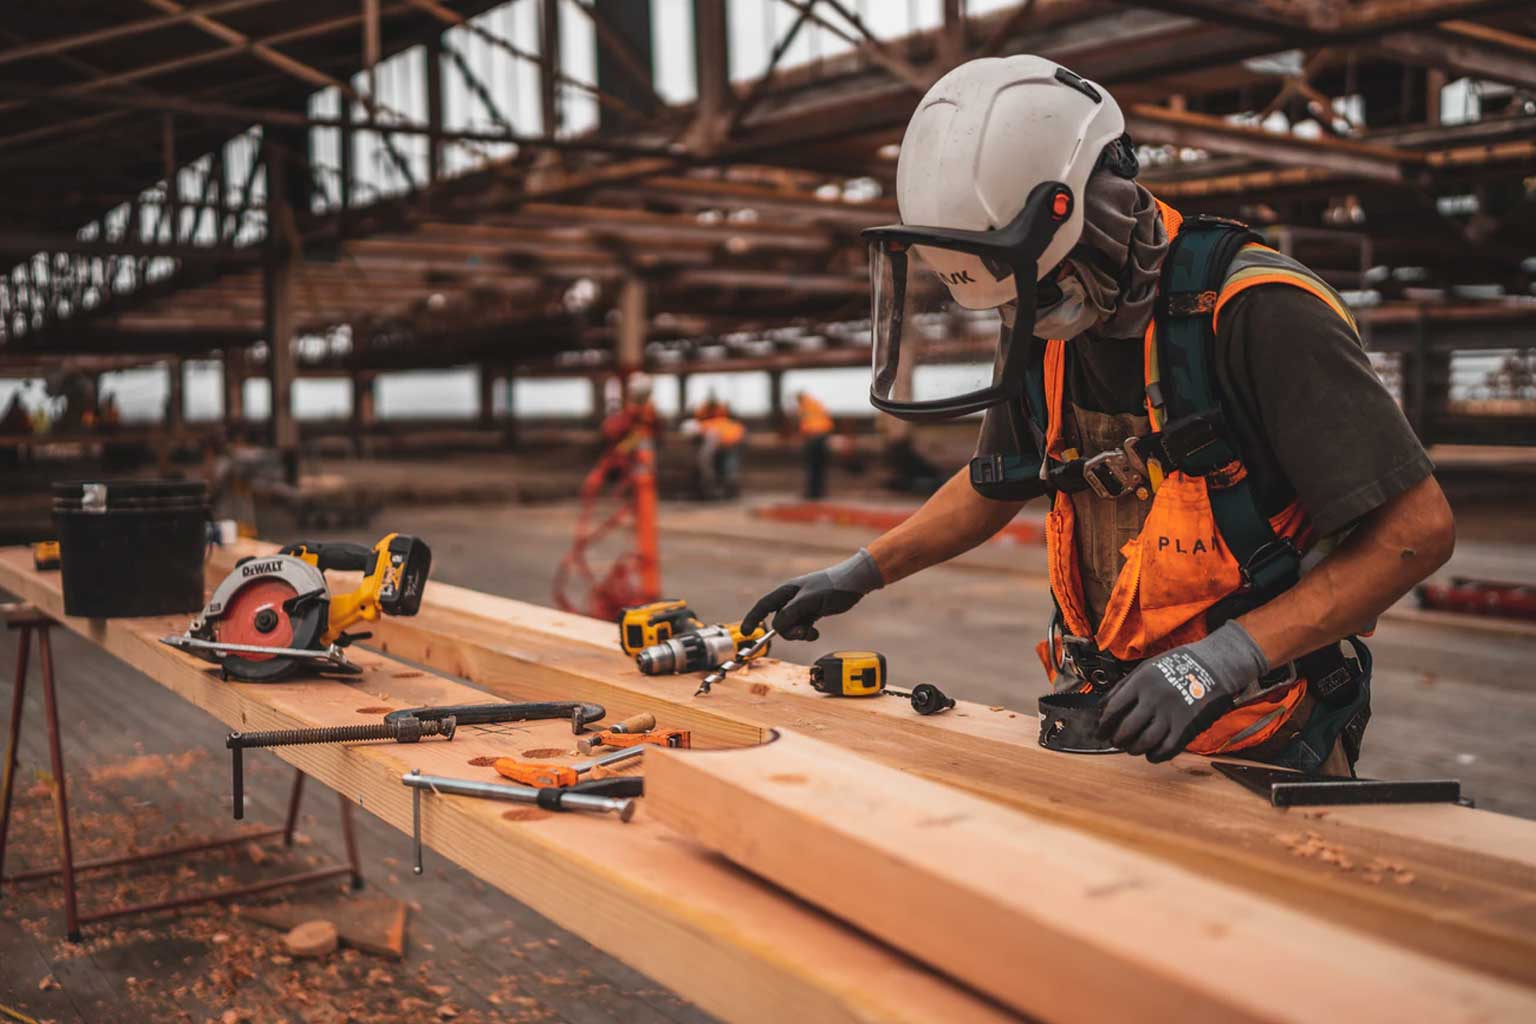 Homebuilding Is Getting Harder: Why You Need a Contractor With Plenty of Manpower